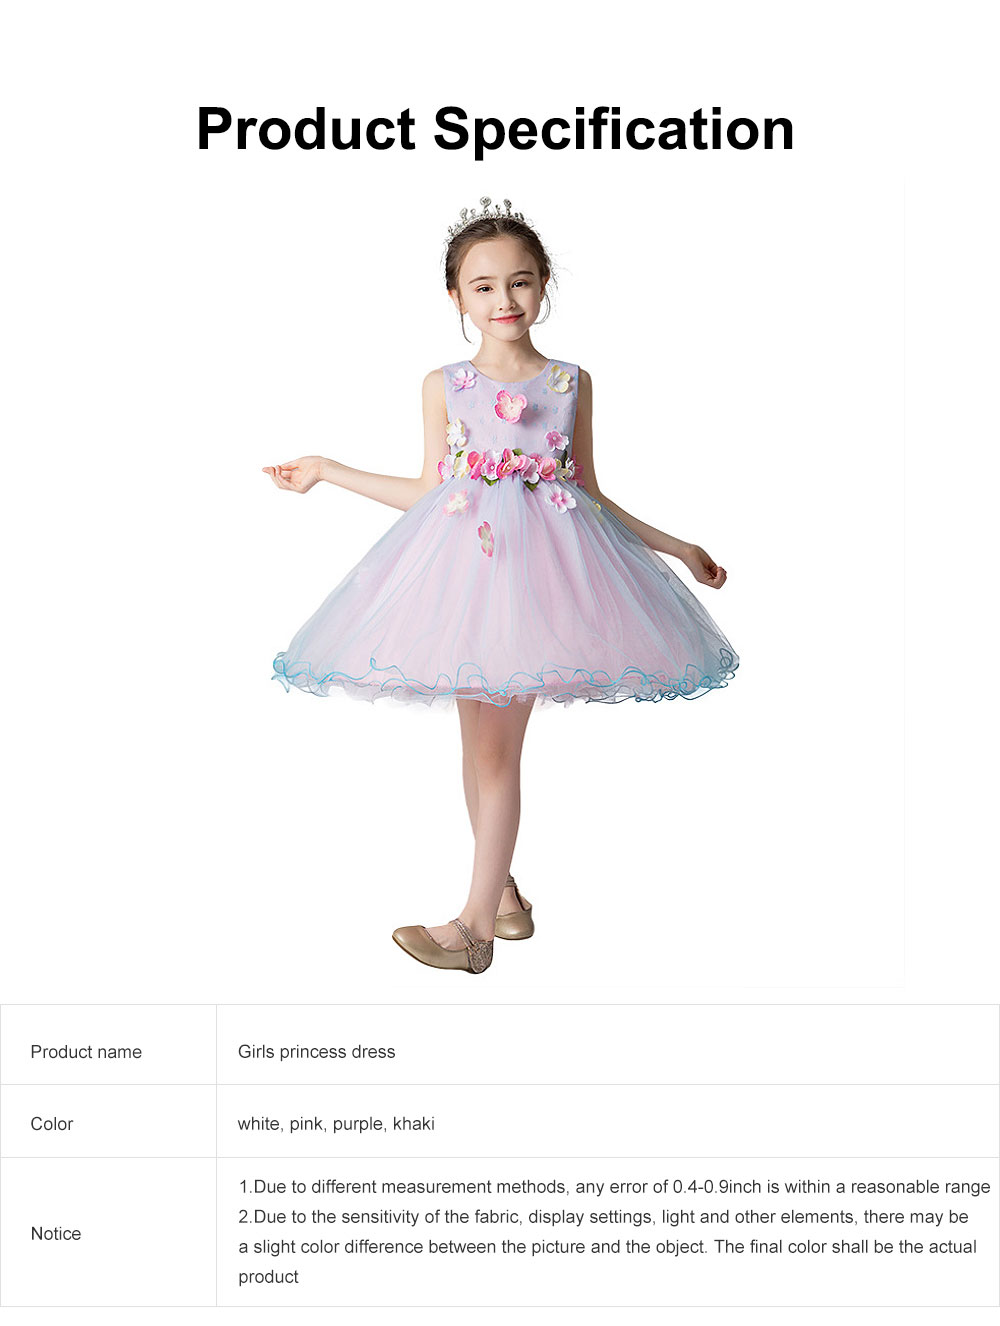 3D Flower Girls Princess Dress, Sleeveless Tulle Birthday Party Dress Best Gifts for Girl 6